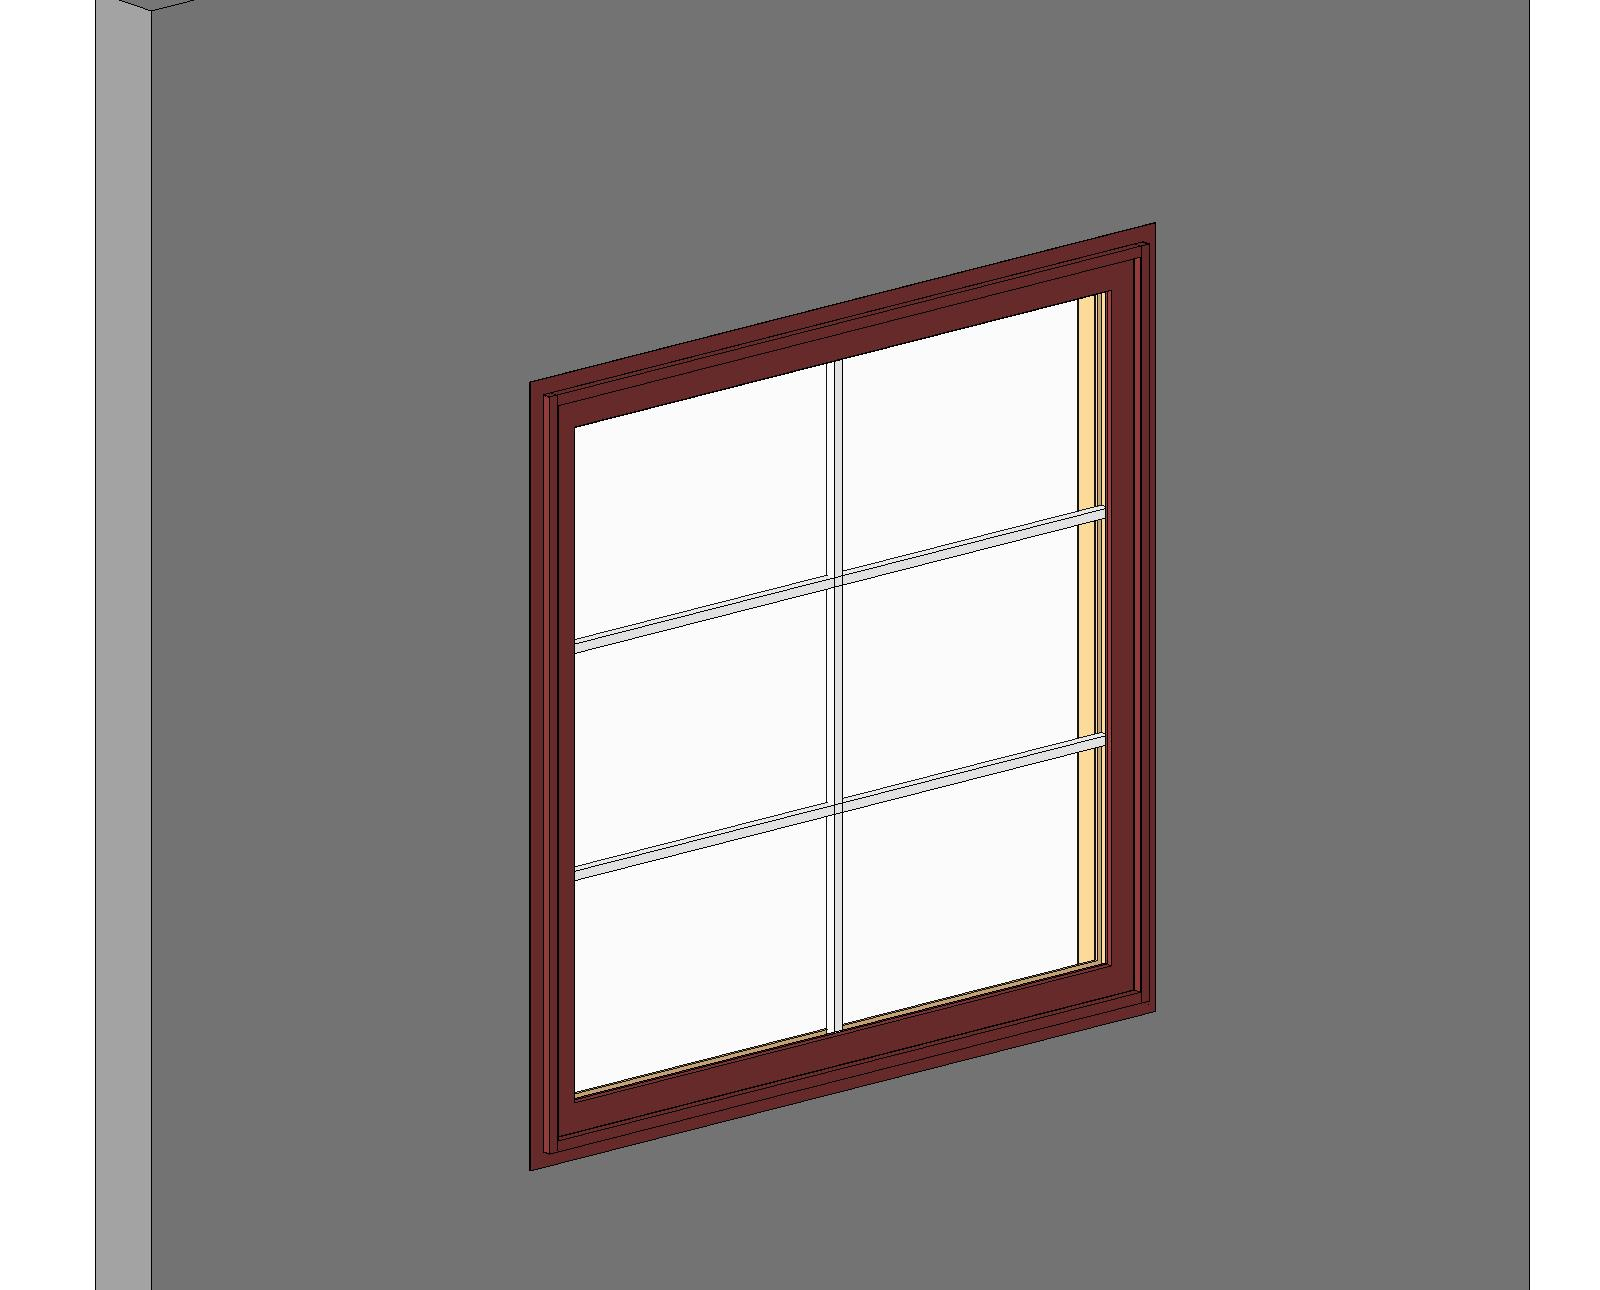 Bim objects families for Wooden casement windows